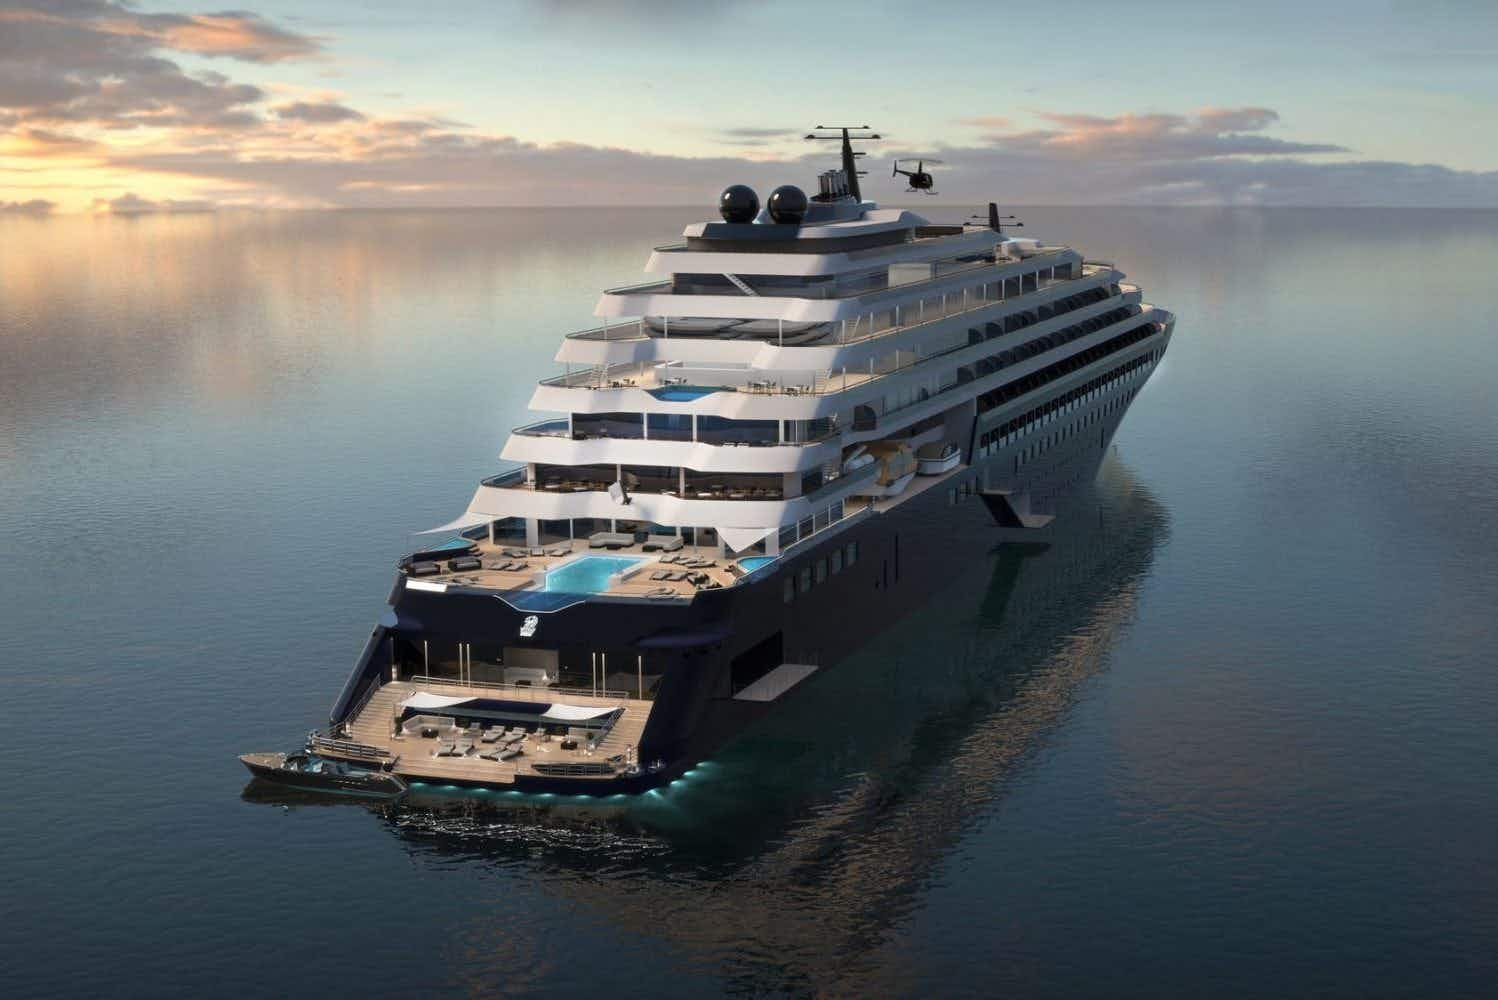 Luxury hotel experience meets the sea as the Ritz-Carlton launches a cruising collection